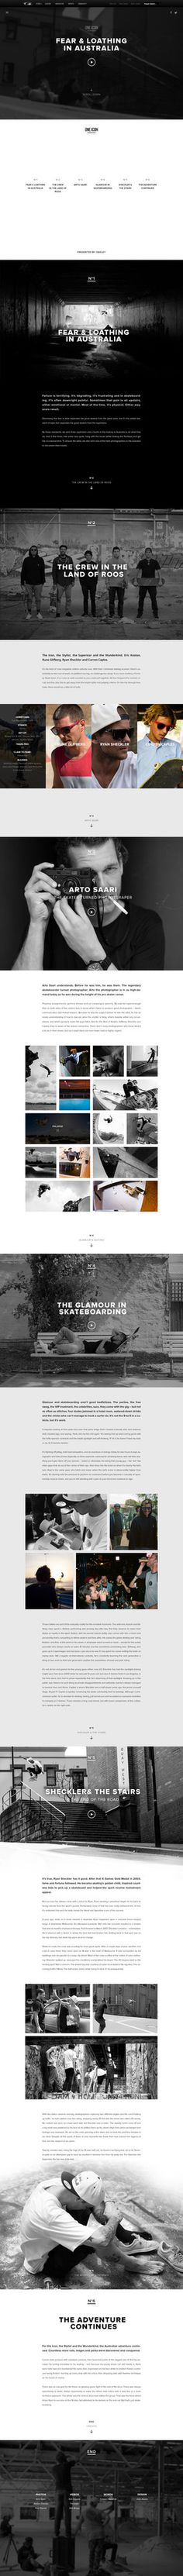 Oakley Features - Fear & Loathing in Australia #responsive #article #oakley #minimal #layout #web #typography